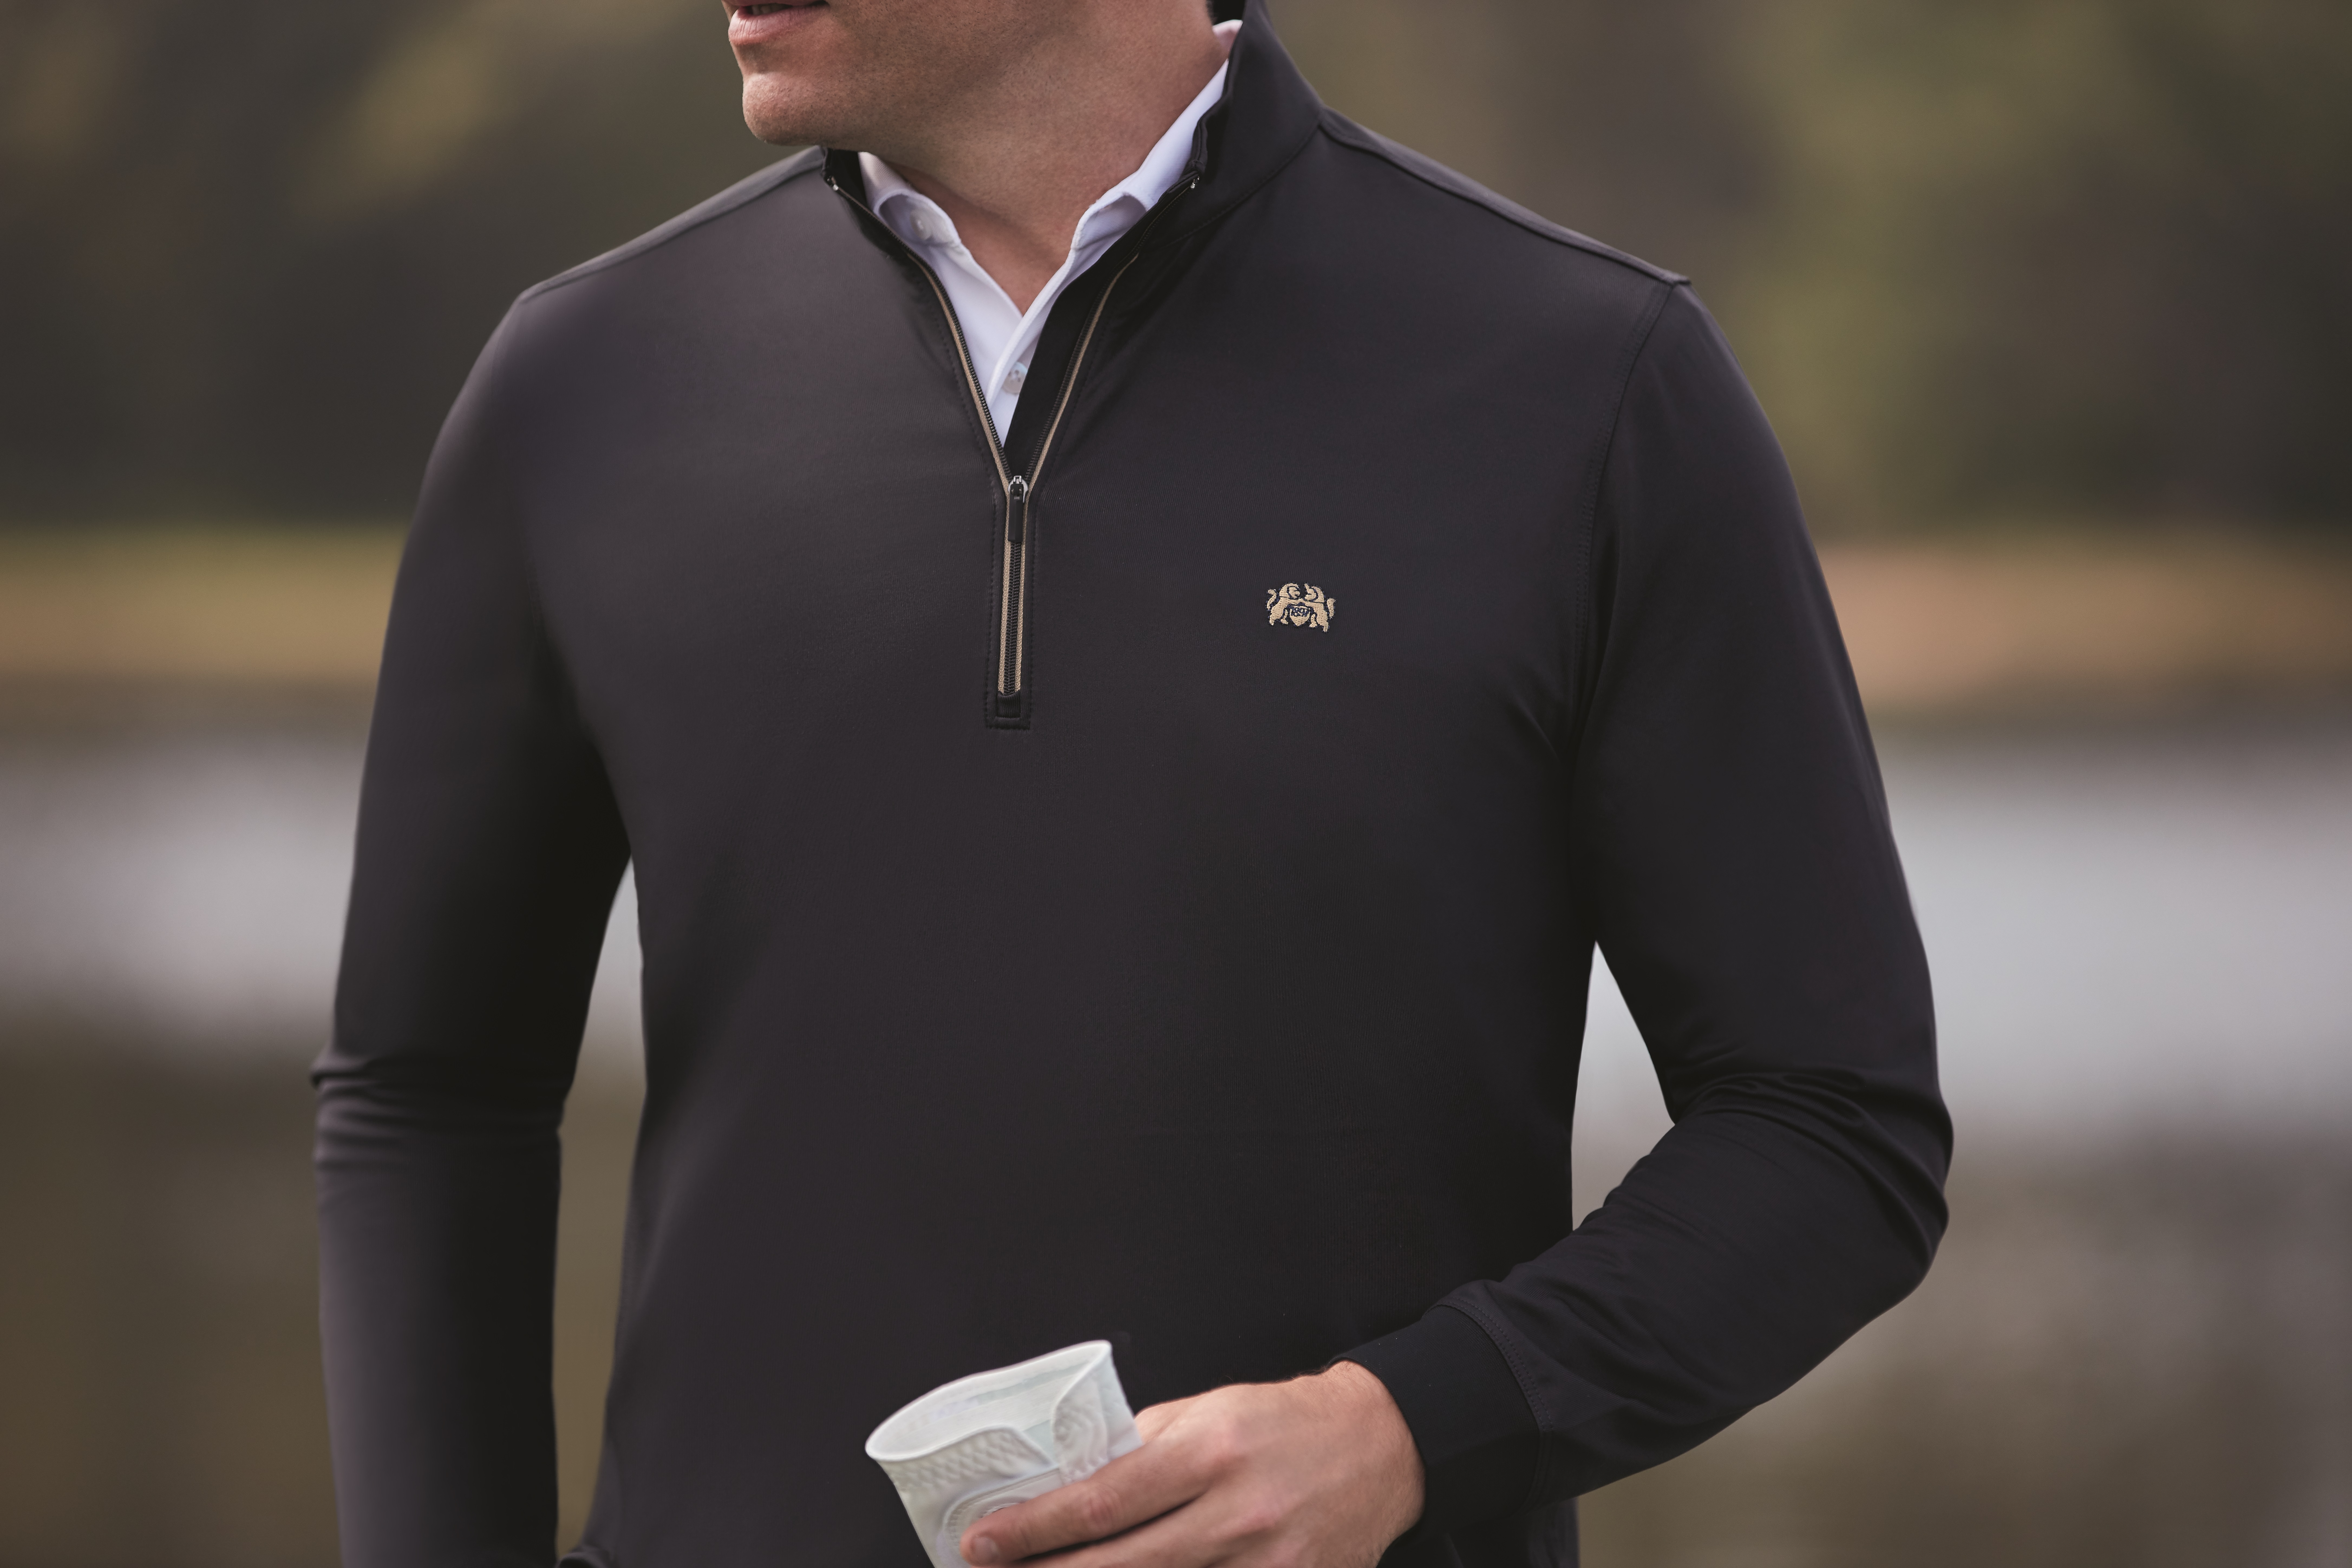 Tourney apparel line whins pullover